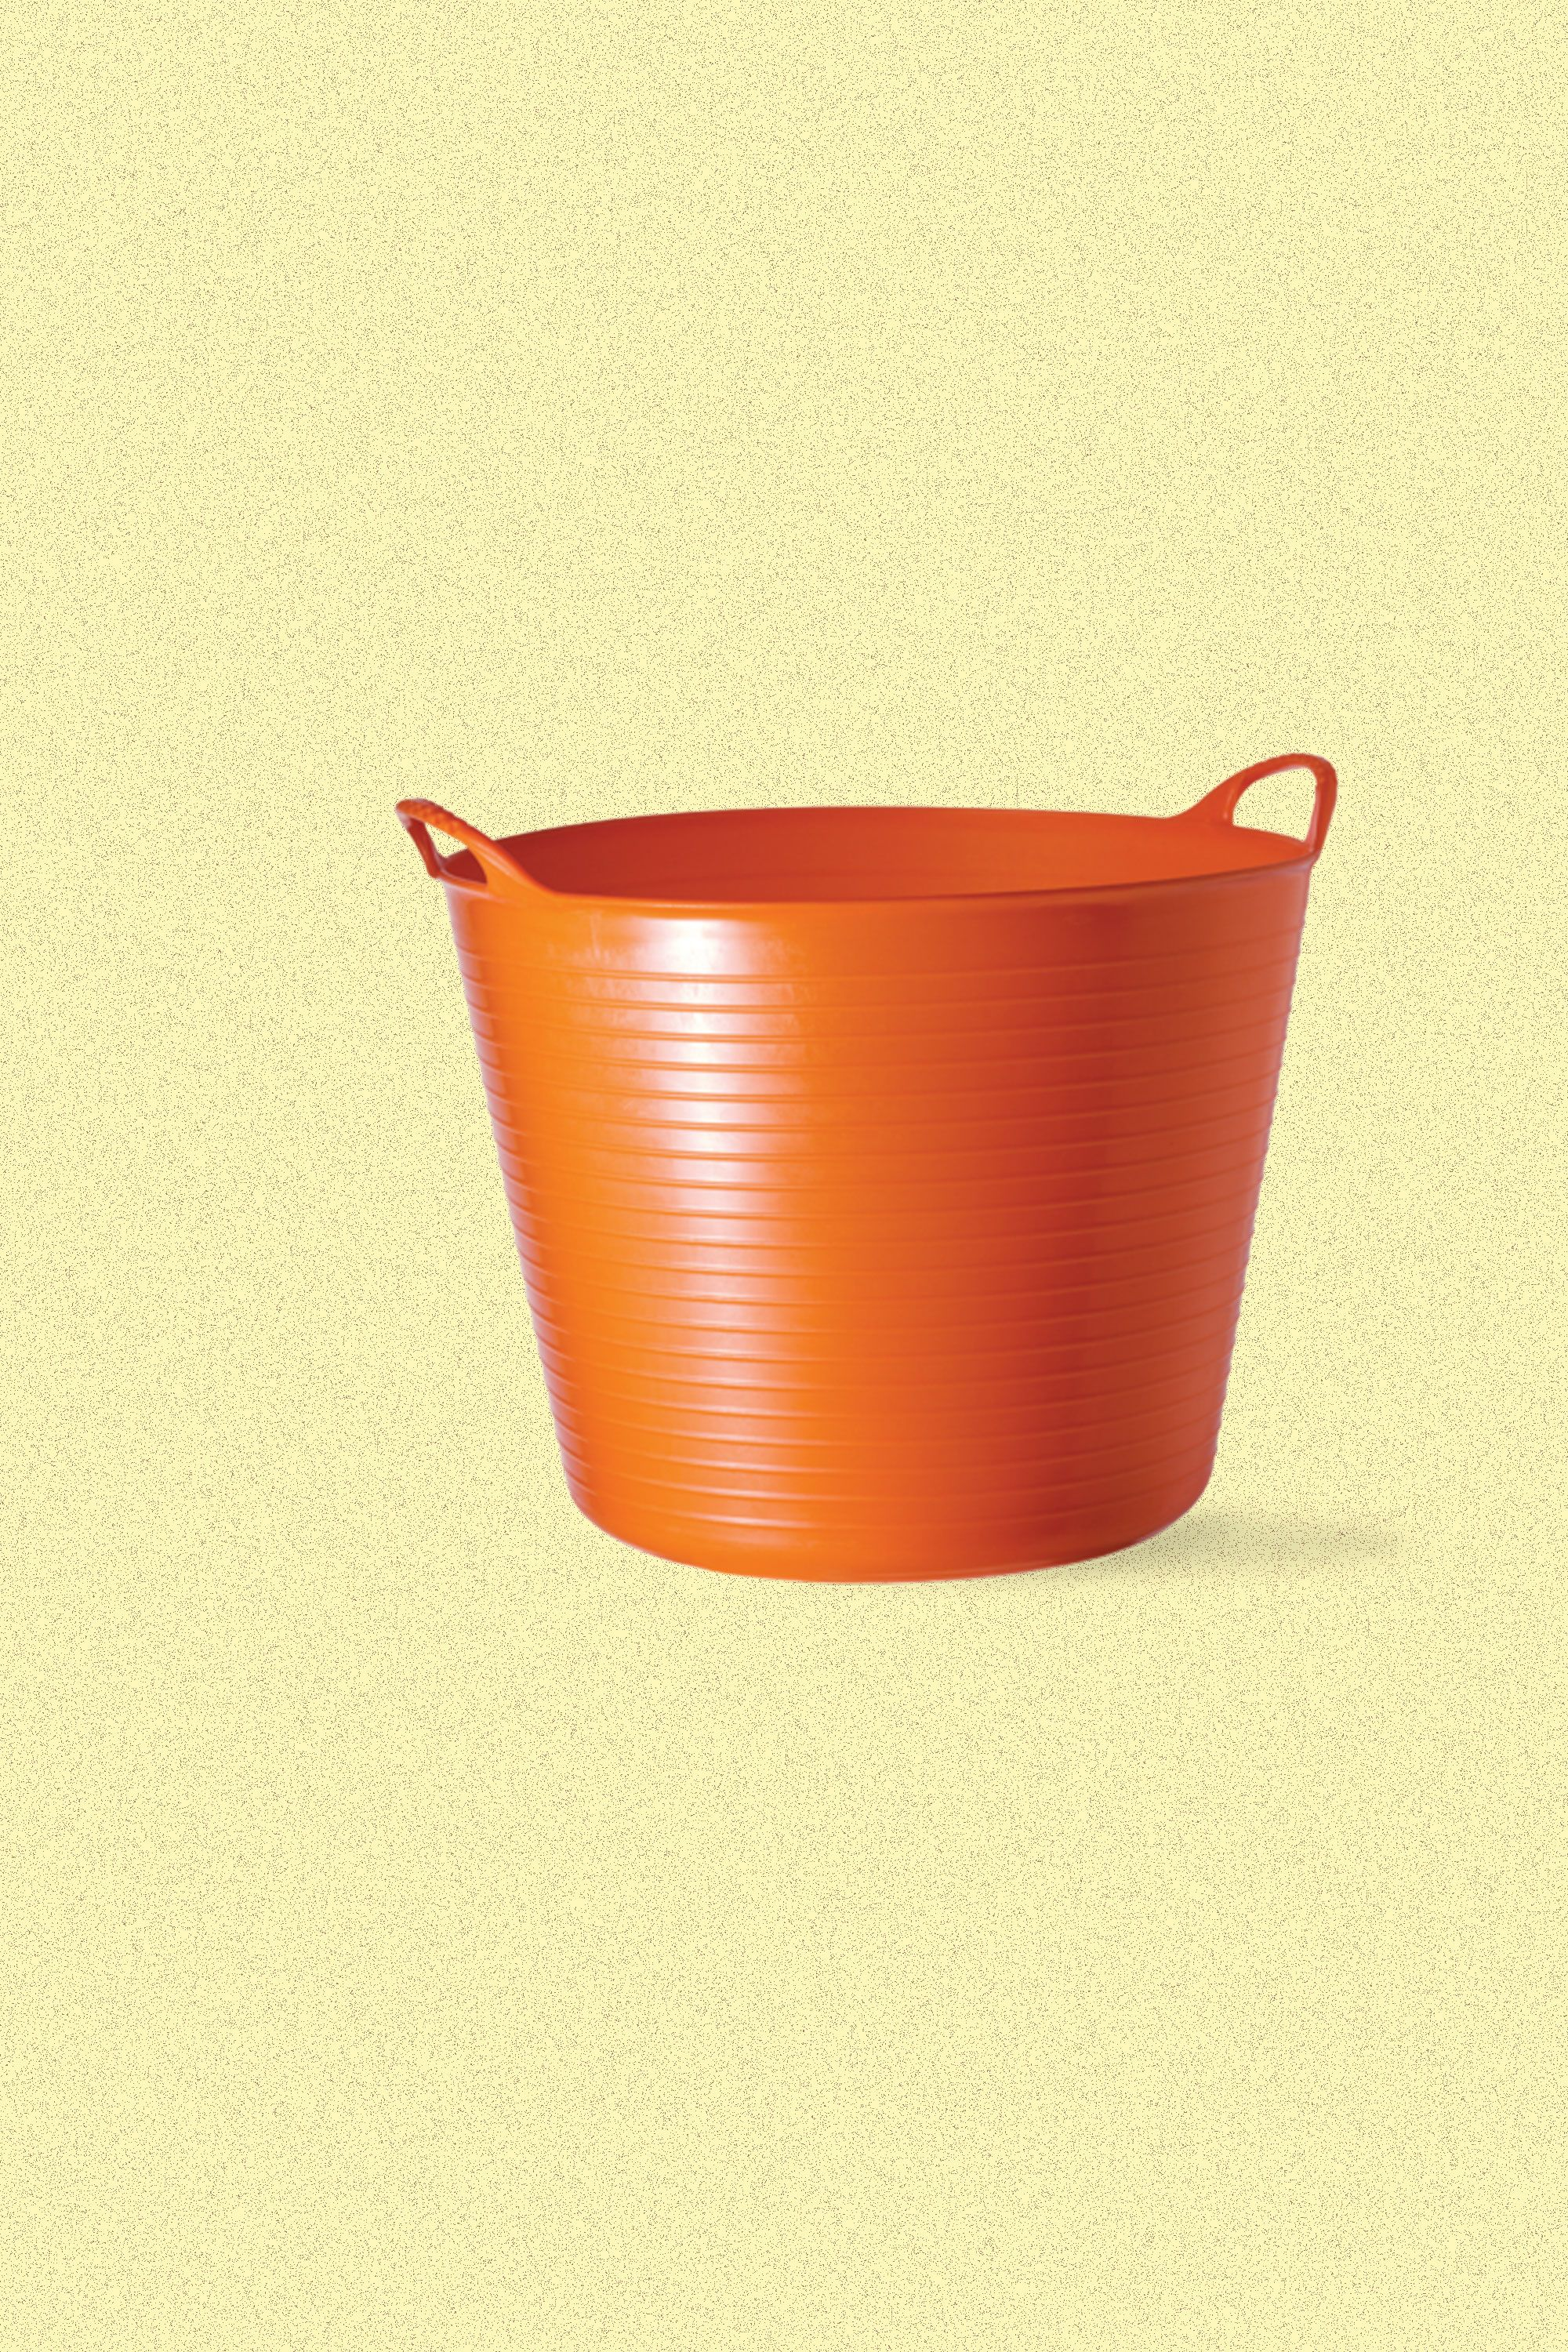 "<p>Harvest veggies, collect weeds, or haul water in a versatile gardening tub. These ribbed tubs are washable, bendable, and durable, so keep a few sizes on hand. You'll use them over and over.</p><p><a href=""https://www.amazon.com/Tubtrugs-SP26SKBL-Flexible-Medium-Capacity/dp/B000UJSQUM/ref=sr_1_3?ie=UTF8&qid=1494257434&sr=8-3&keywords=tubtrug&tag=countryliving1-20"" target=""_blank"" class=""slide-buy--button"" data-tracking-id=""recirc-text-link"">BUY NOW</a></p>"